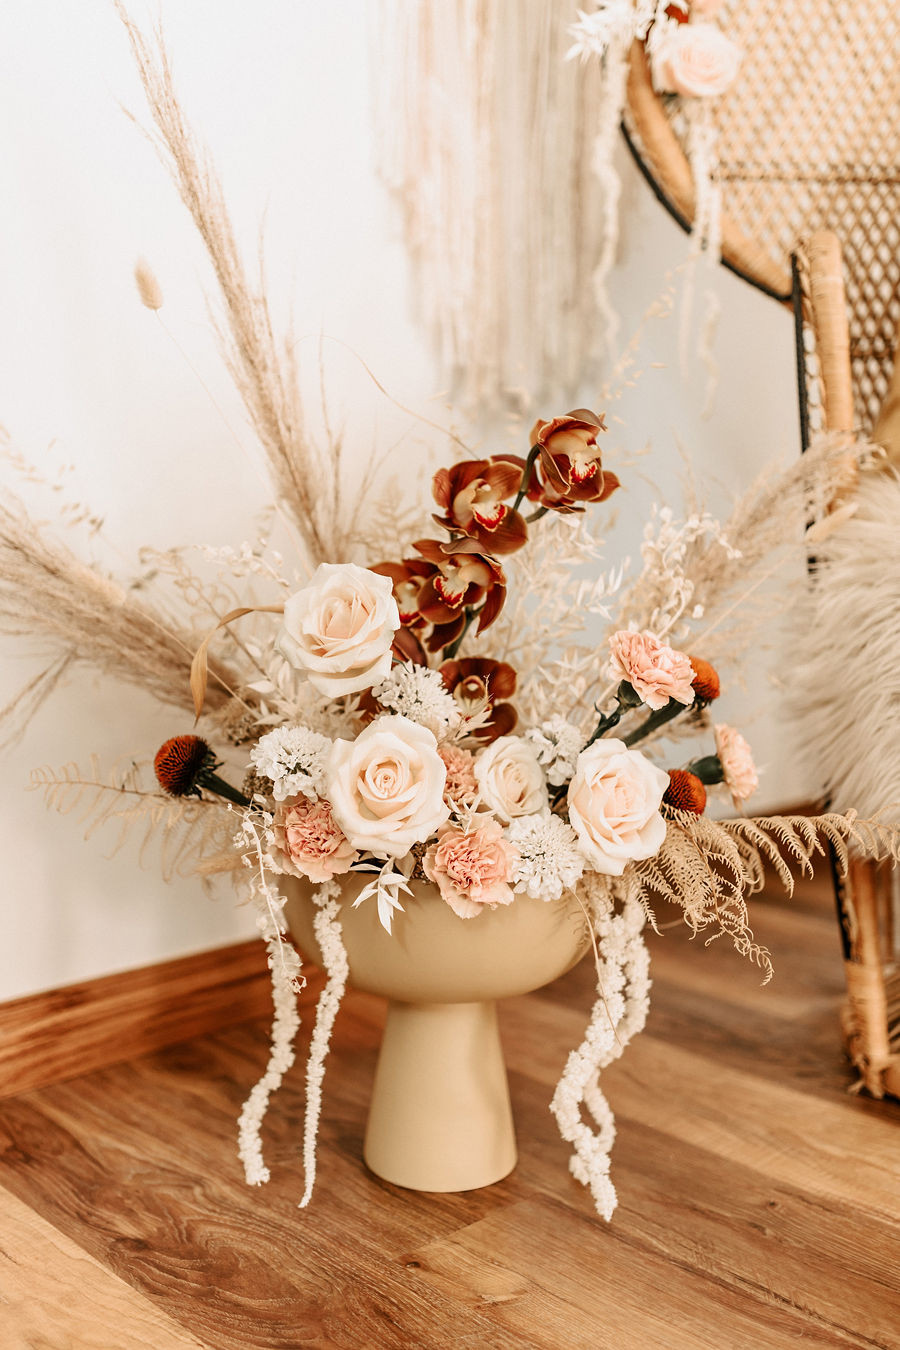 A collection of vintage boho romantic inspired flowers at a baby shower with lace details and whicker accents.